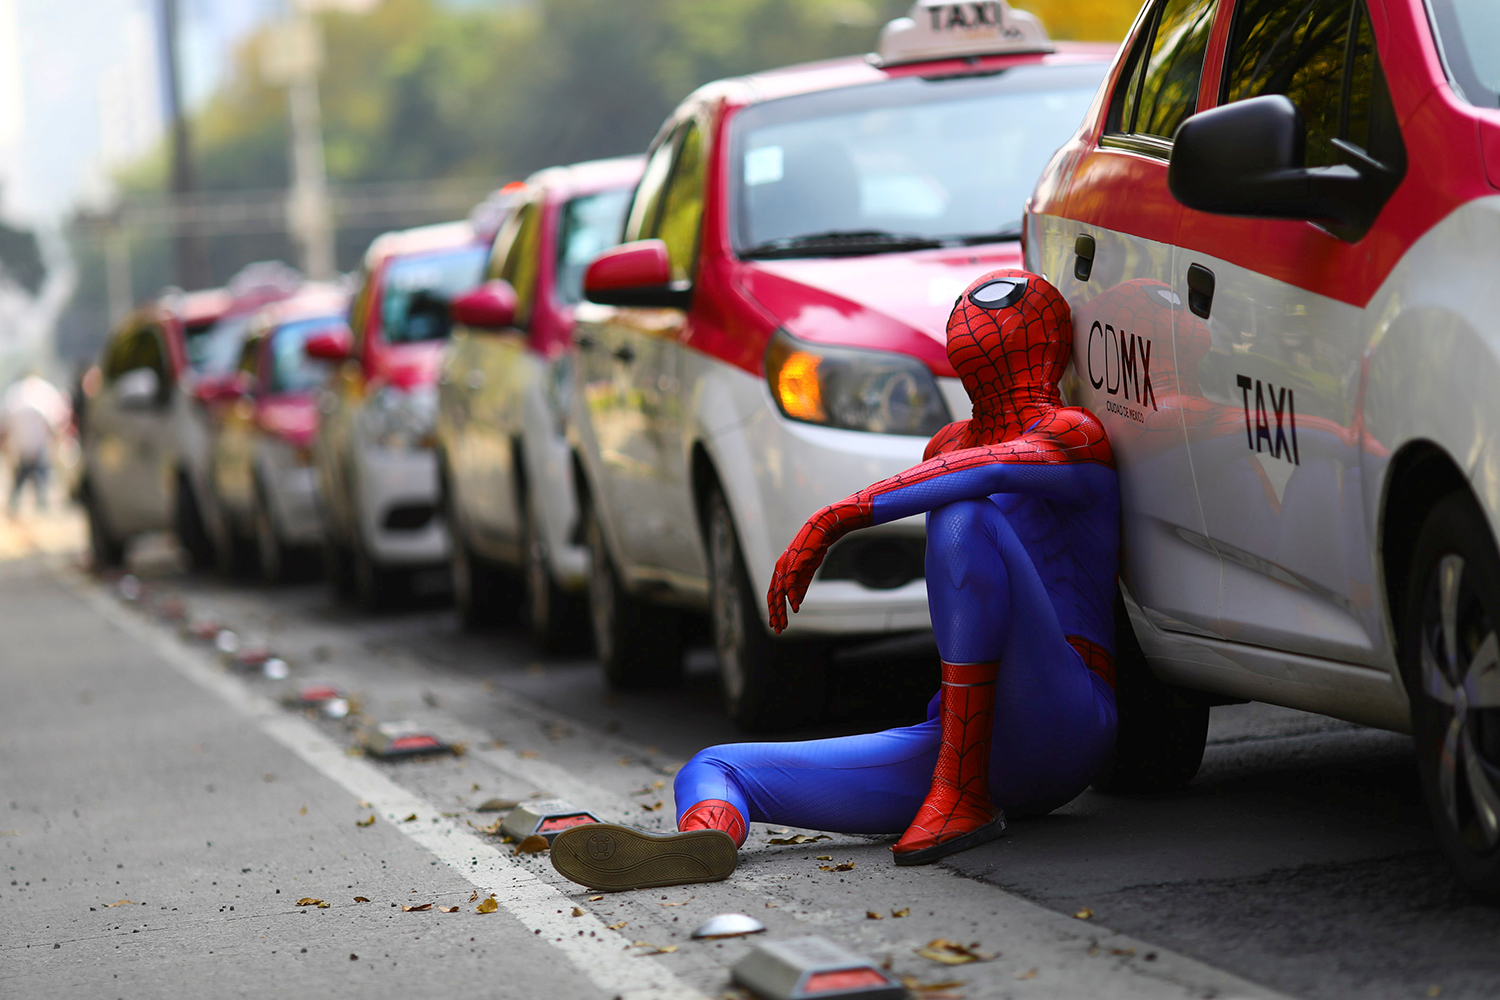 A person dressed as Spider-Man sits next to a line of cabs as taxi drivers protest against car-hailing apps such as Uber at the Angel of Independence monument in Mexico City on Oct. 12. Edgard Garrido/REUTERS